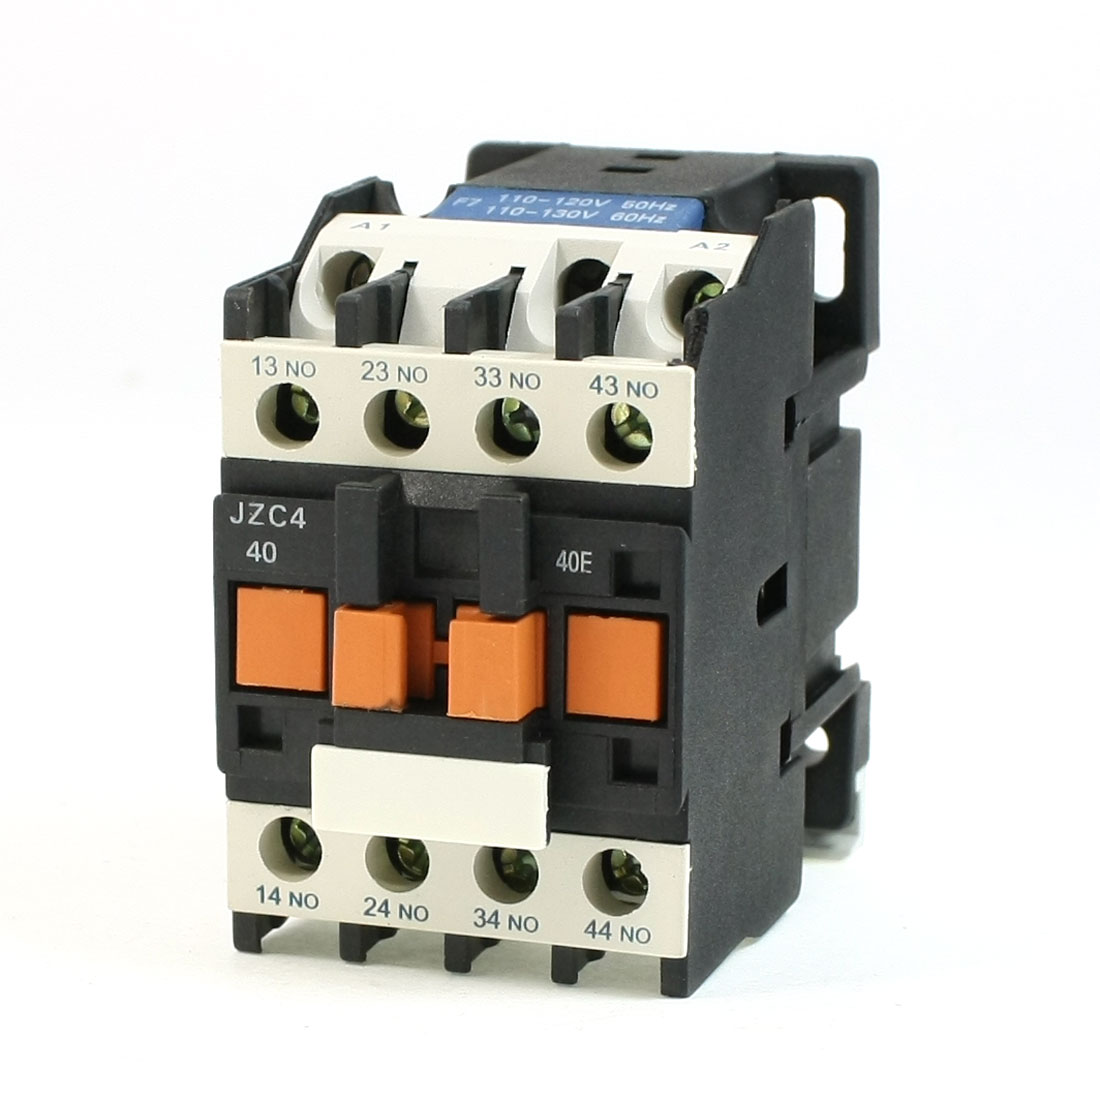 JZC4-40 110VAC 50/60Hz Coil 3P Three Pole 4NO AC Contactor